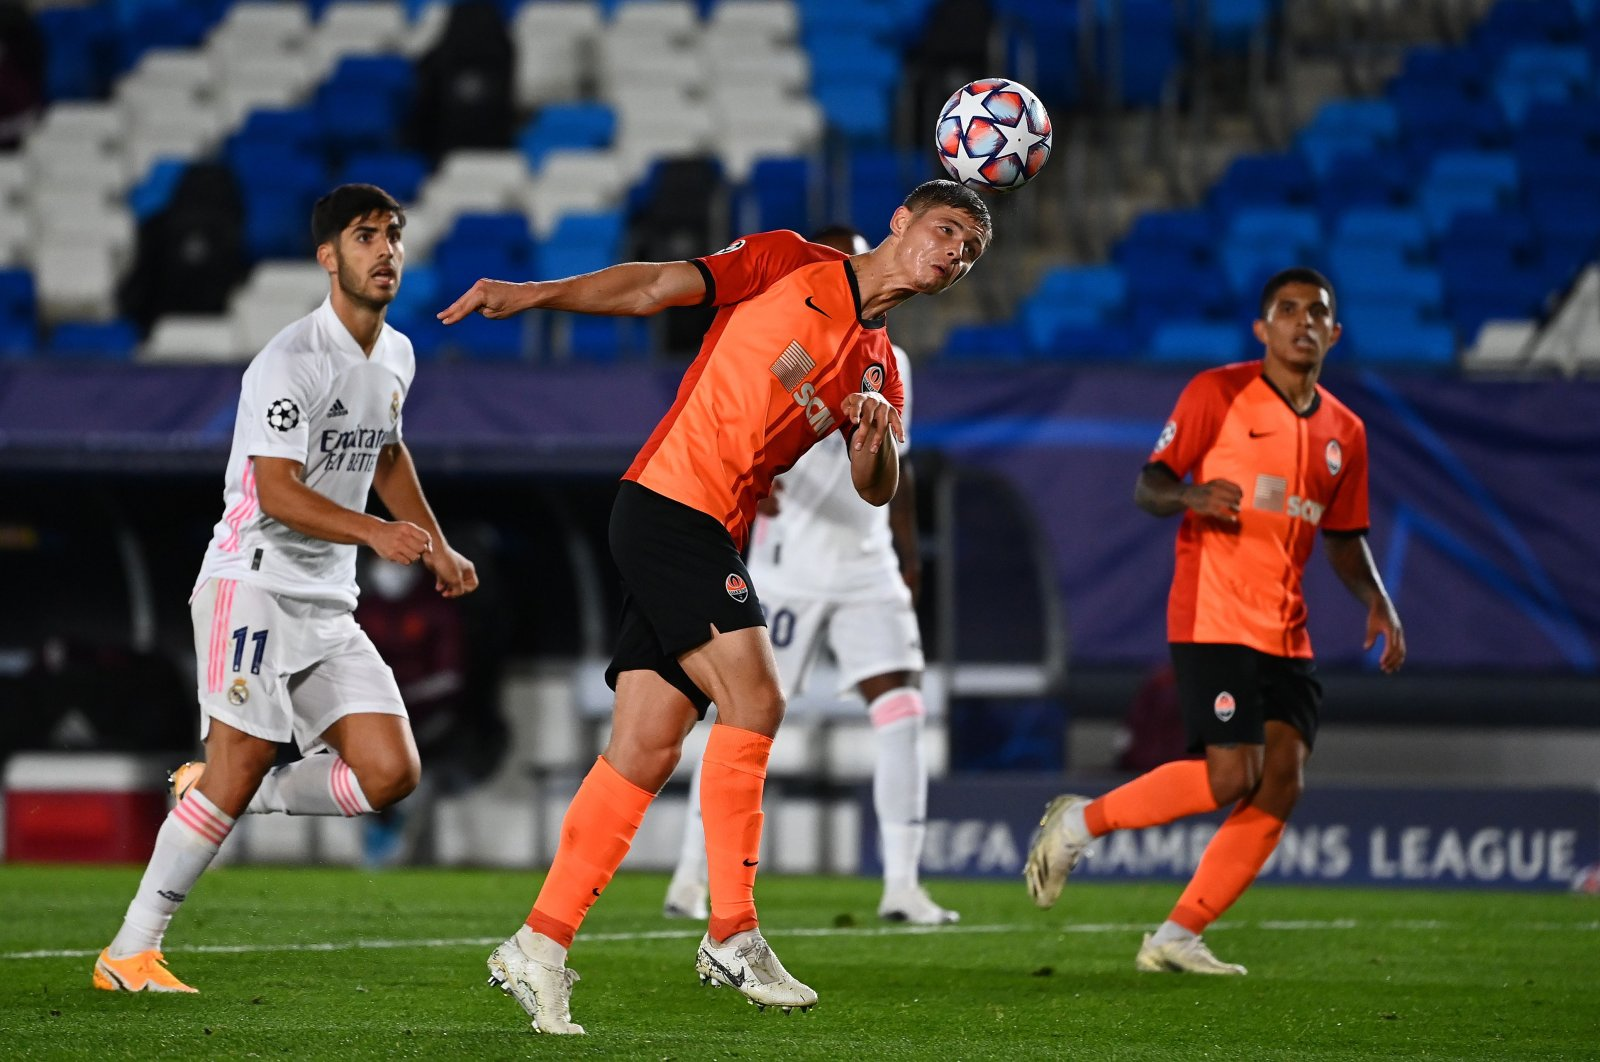 Shakhtar Donetsk's Ukrainian defender Valeriy Bondar (C) heads the ball during the UEFA Champions League group B football match between Real Madrid and Shakhtar Donetsk at the Alfredo di Stefano stadium in Valdebebas, Madrid, Spain, Oct. 21, 2020. (AFP Photo)